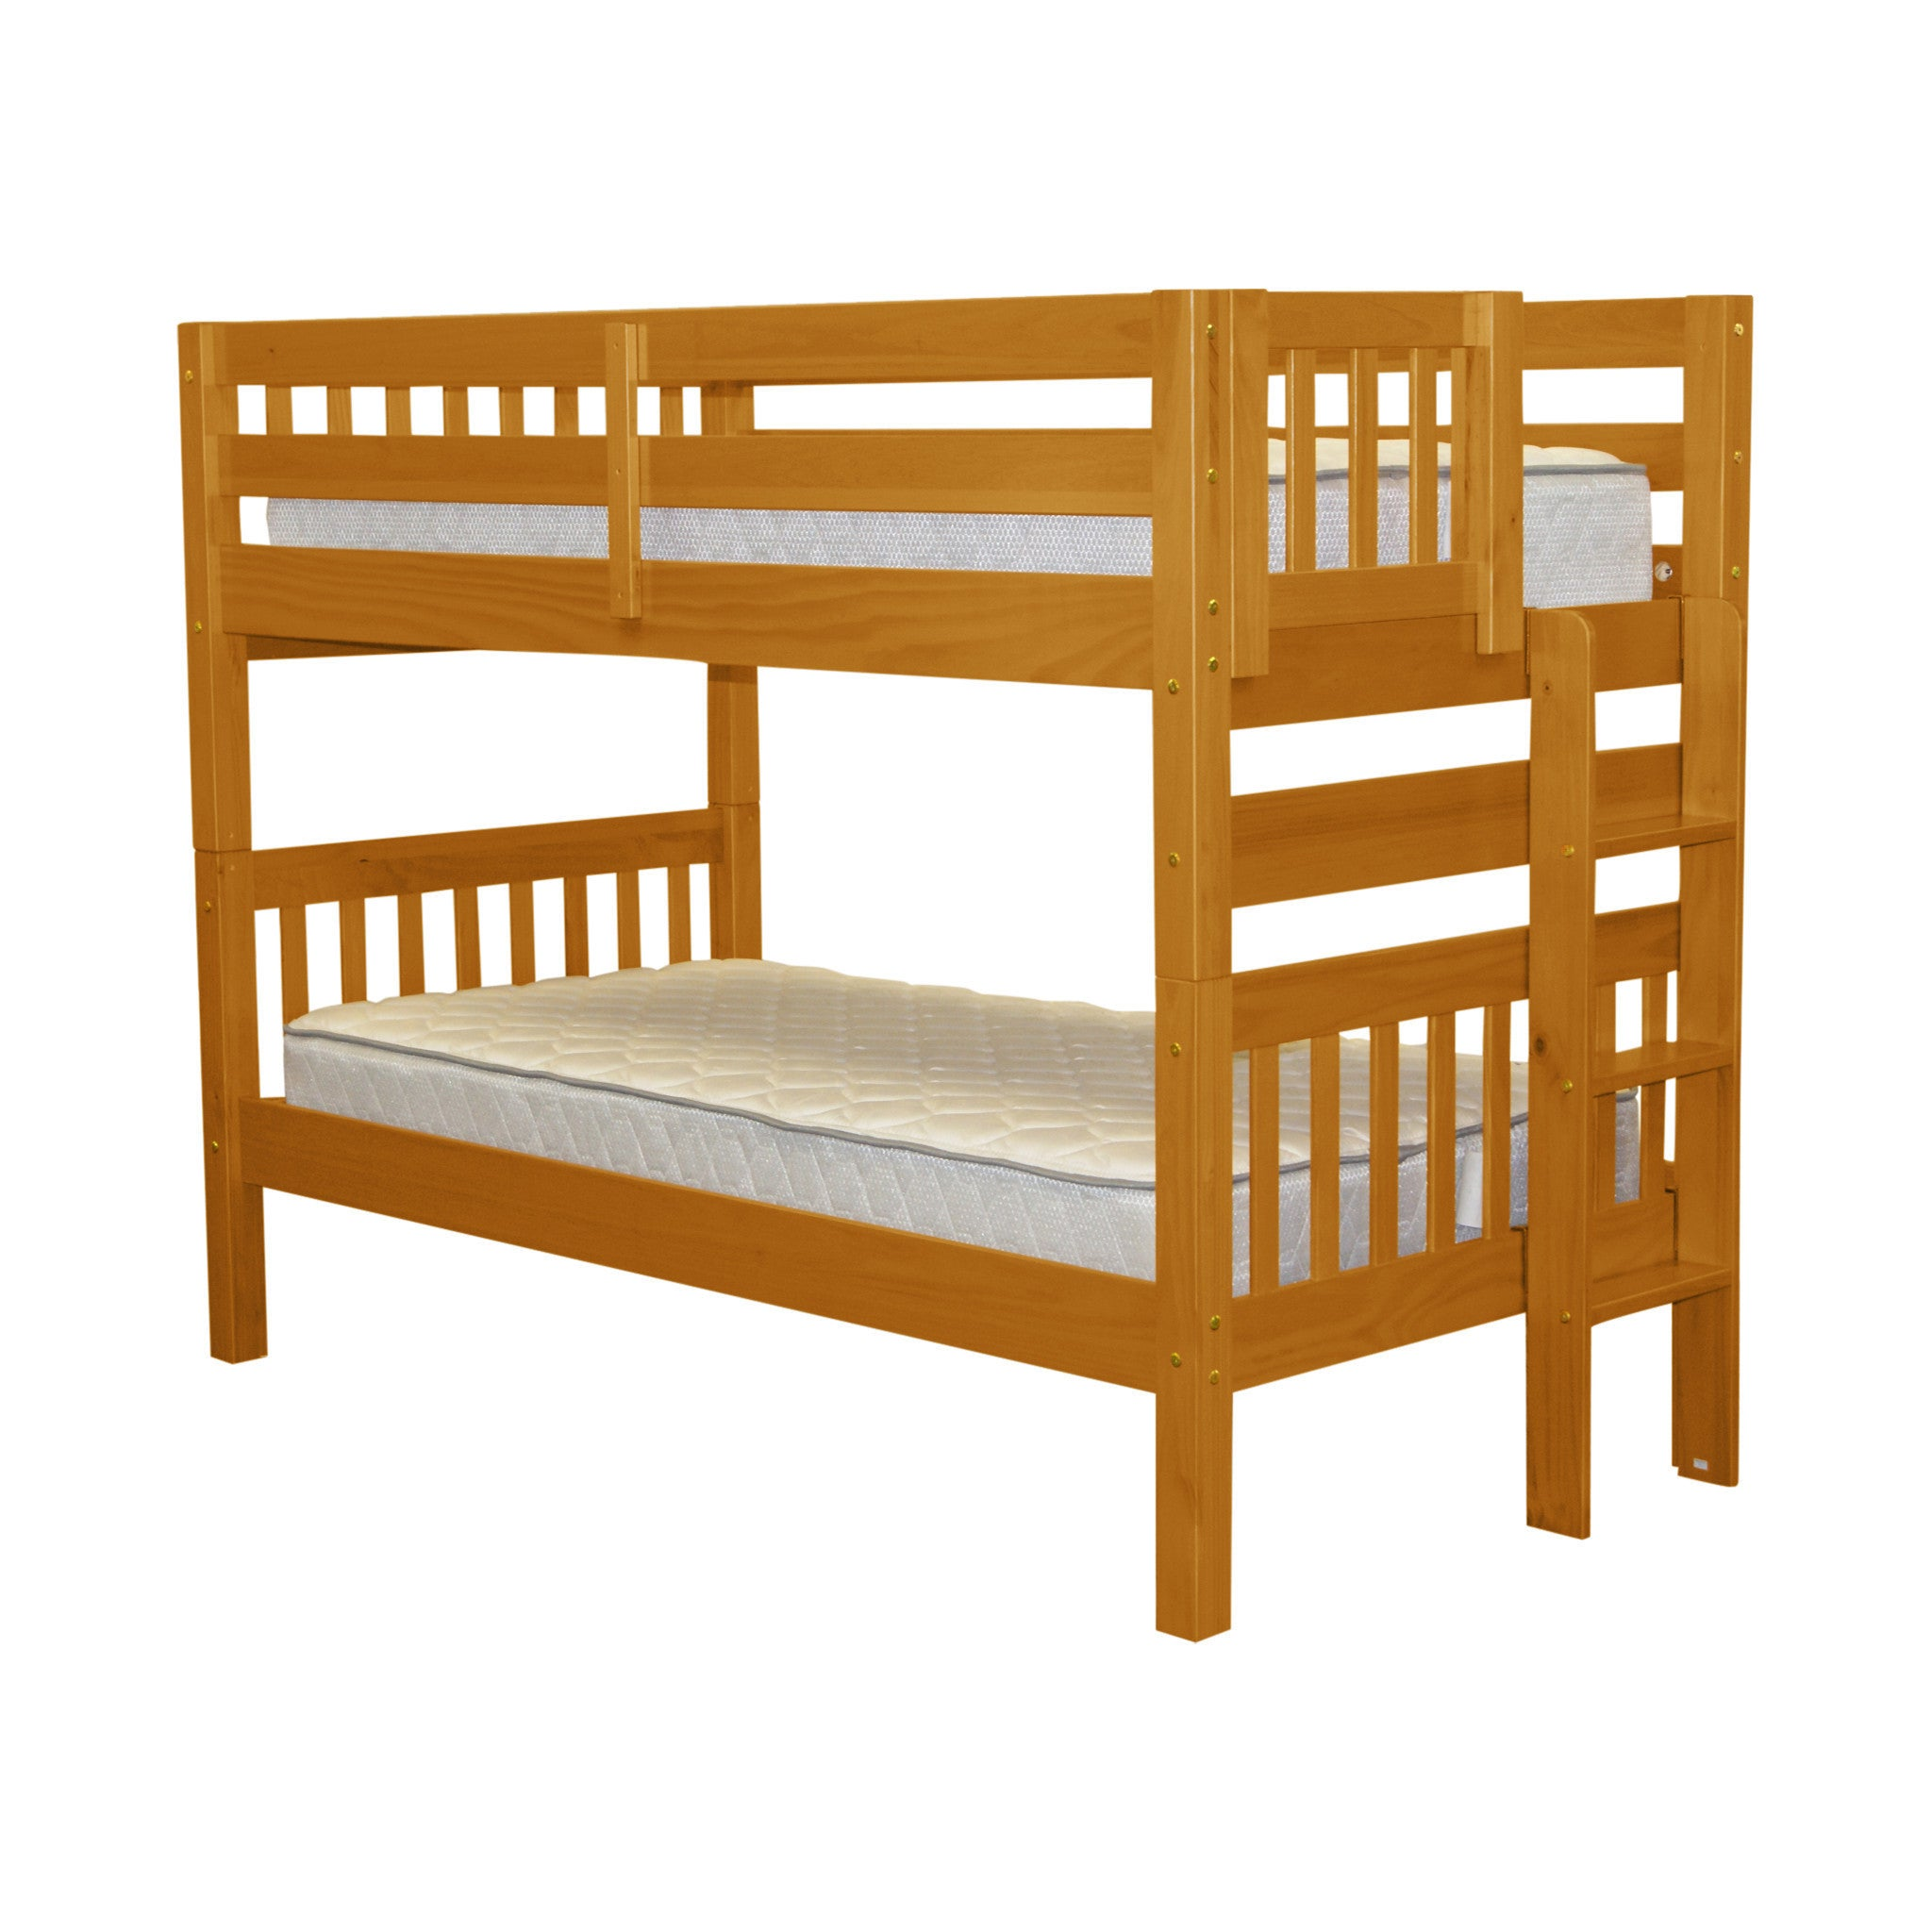 Bedz King Honey Wood Twin-over-Twin Bunk Bed with End Lad...